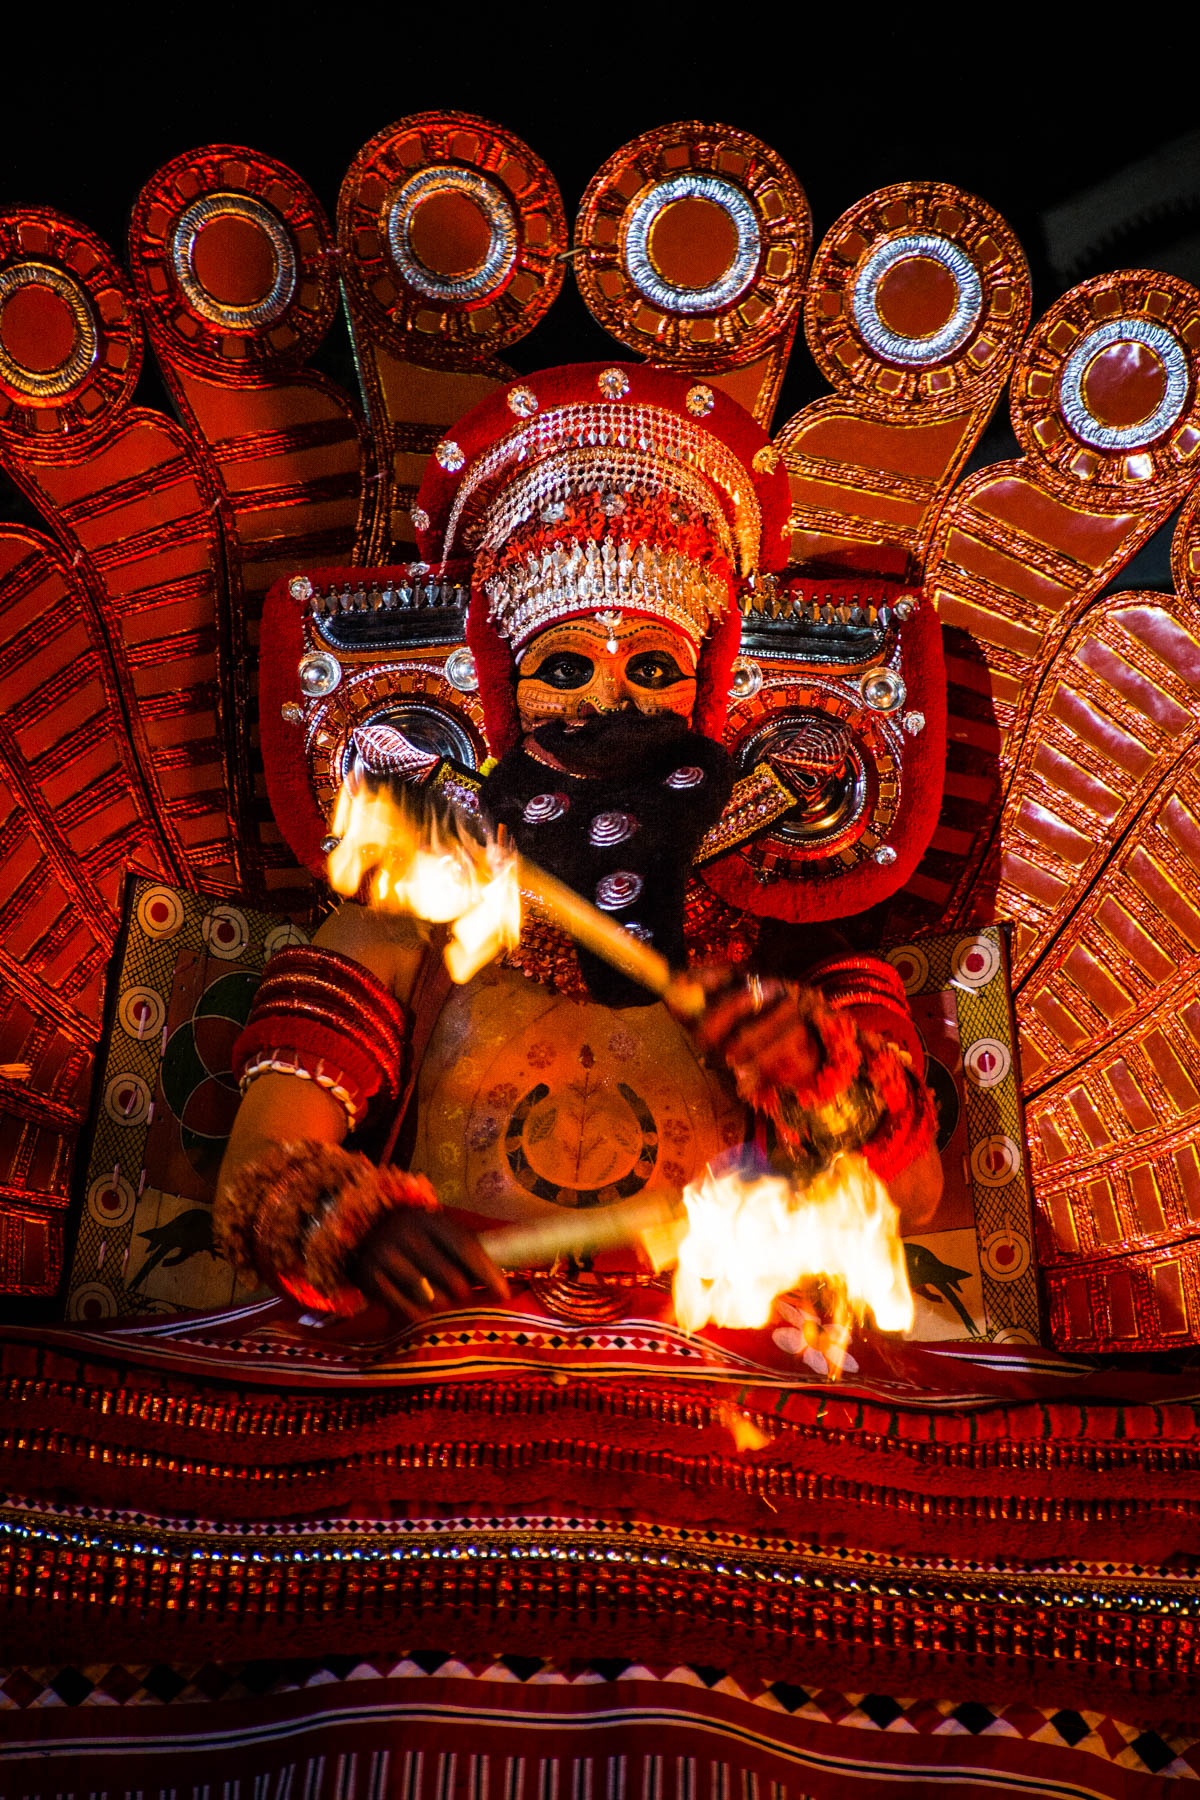 Kutty Theyyam and fire - Where to see Theyyam in Kerala, India - Lost With Purpose